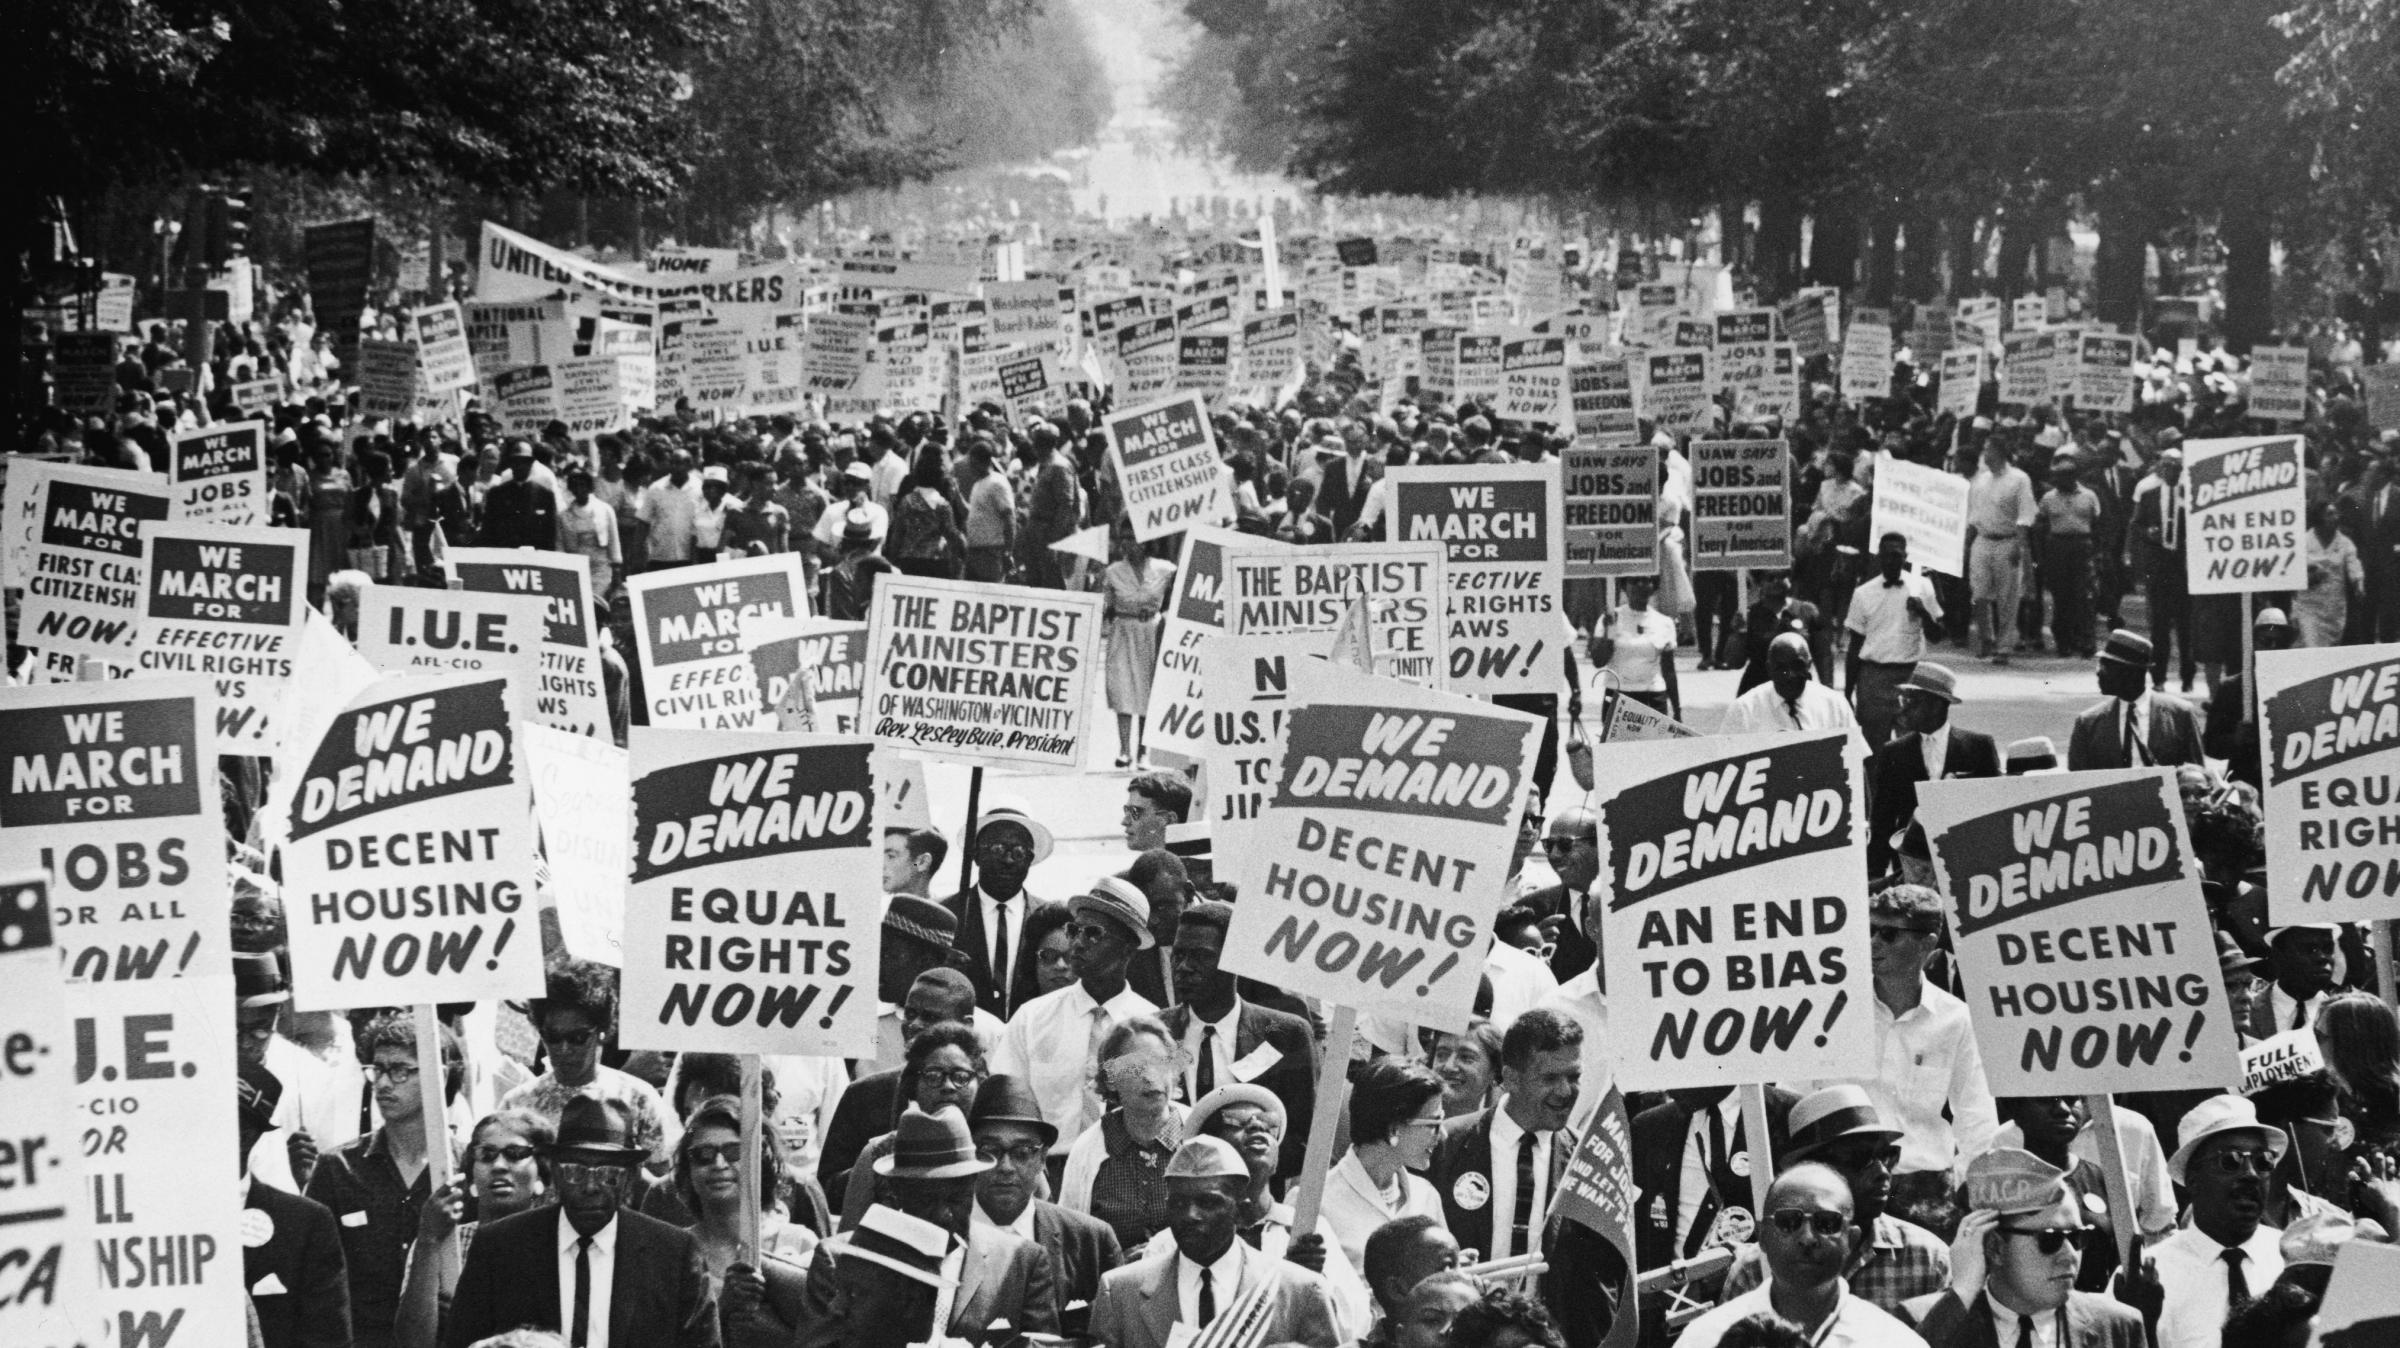 an analysis of the civil injustice in the united states during the 1950s